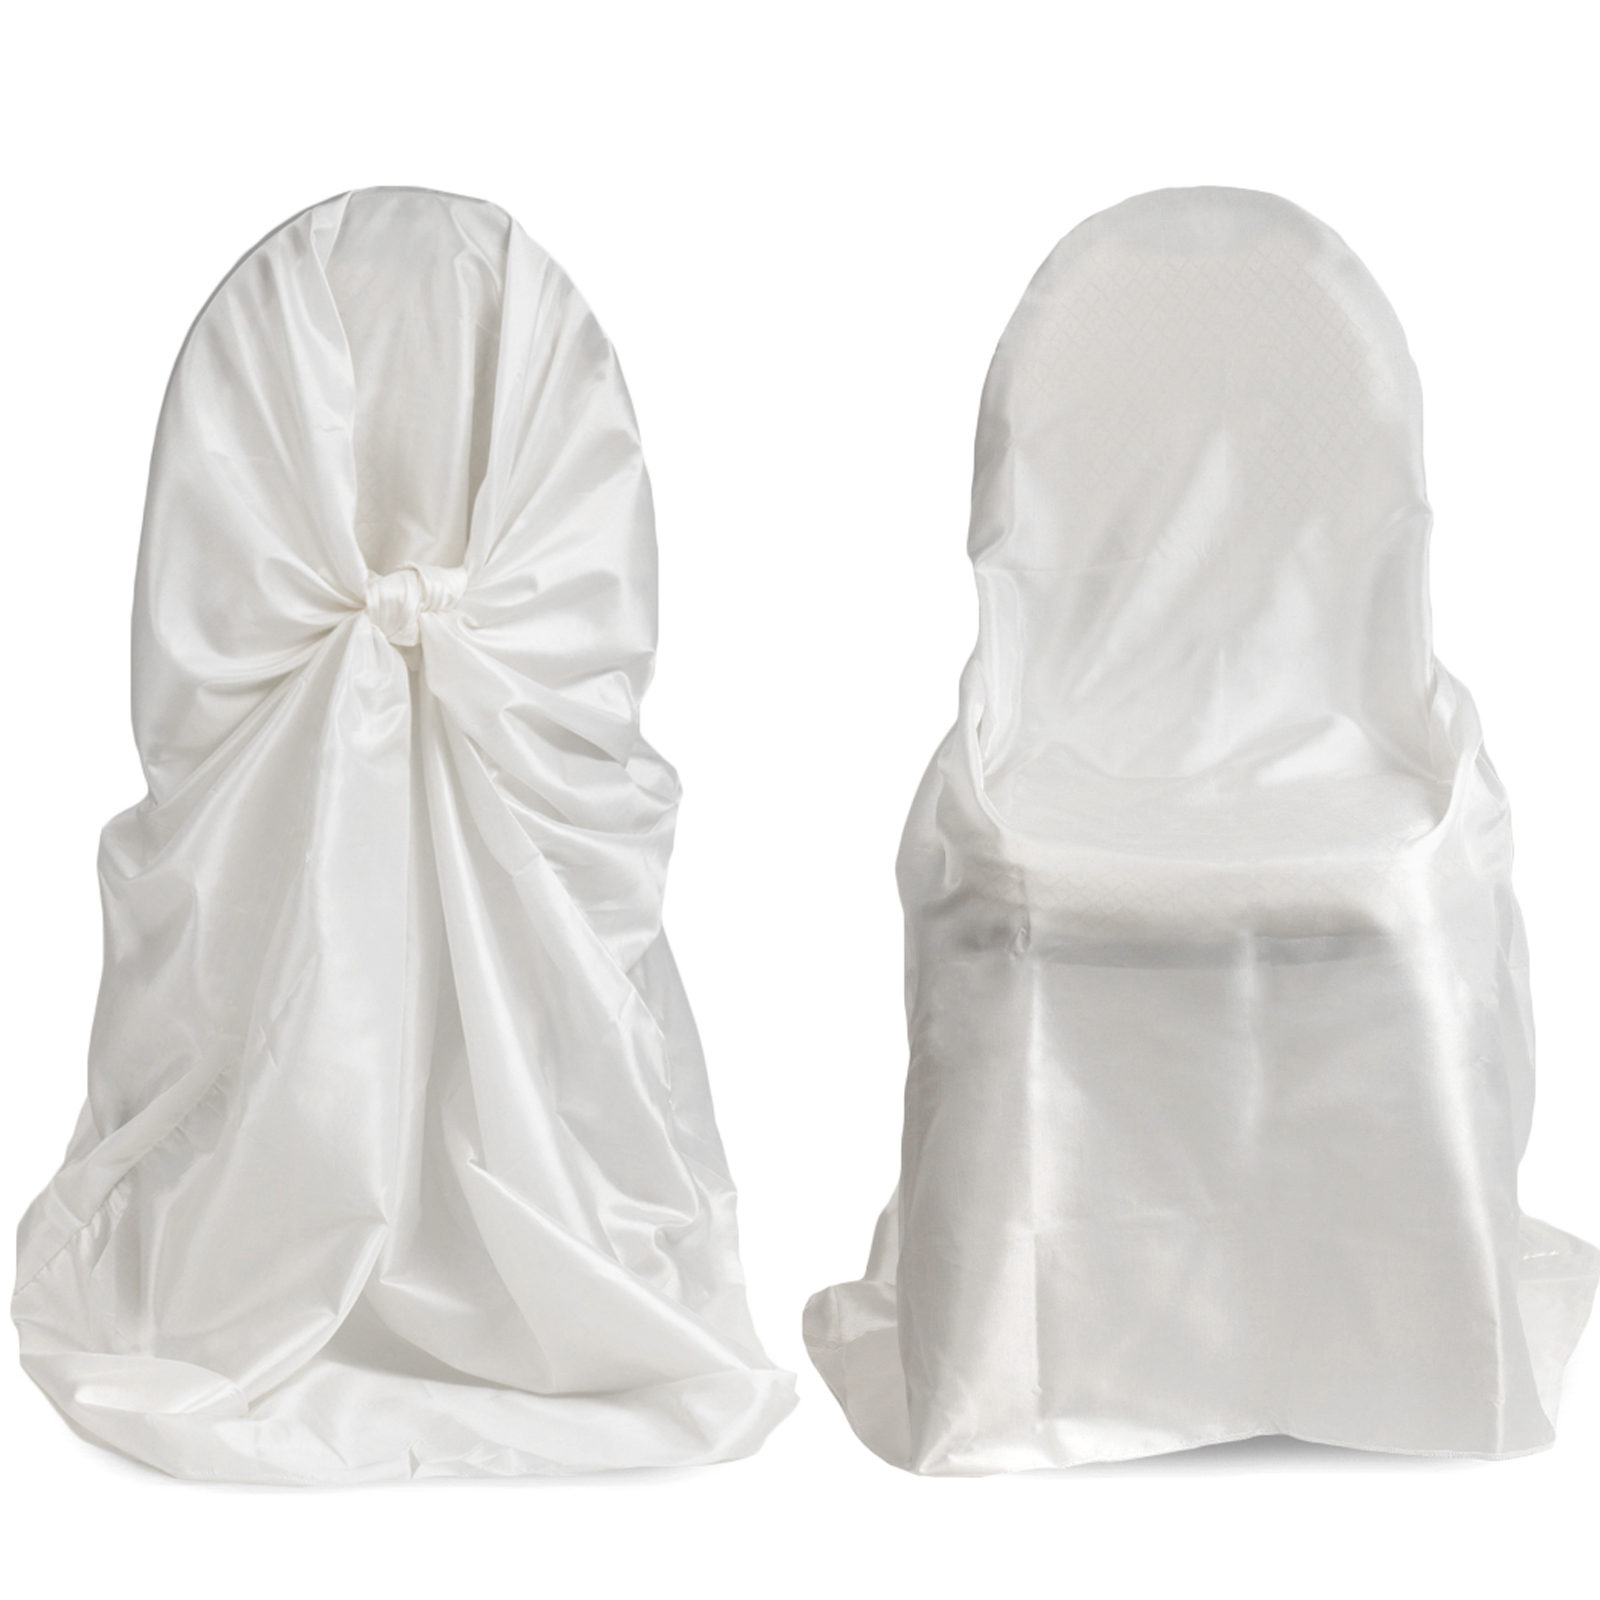 Popular Satin Chair Cover Buy Cheap Satin Chair Cover lots from